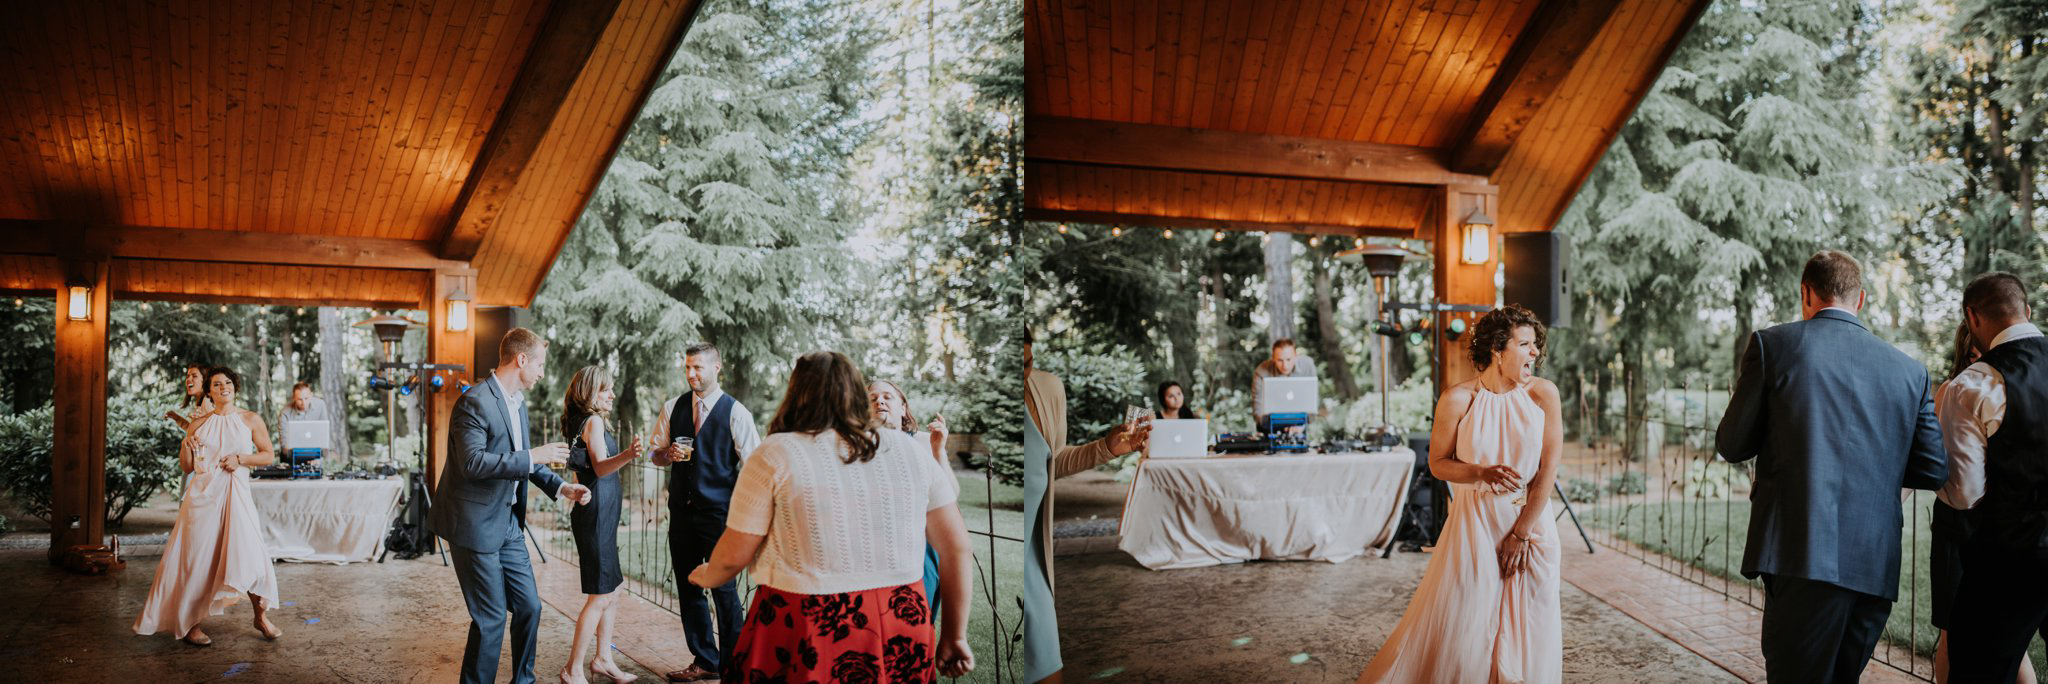 evergreen-gardens-bellingham-wedding-seattle-photographer-caitlyn-nikula-119.jpg